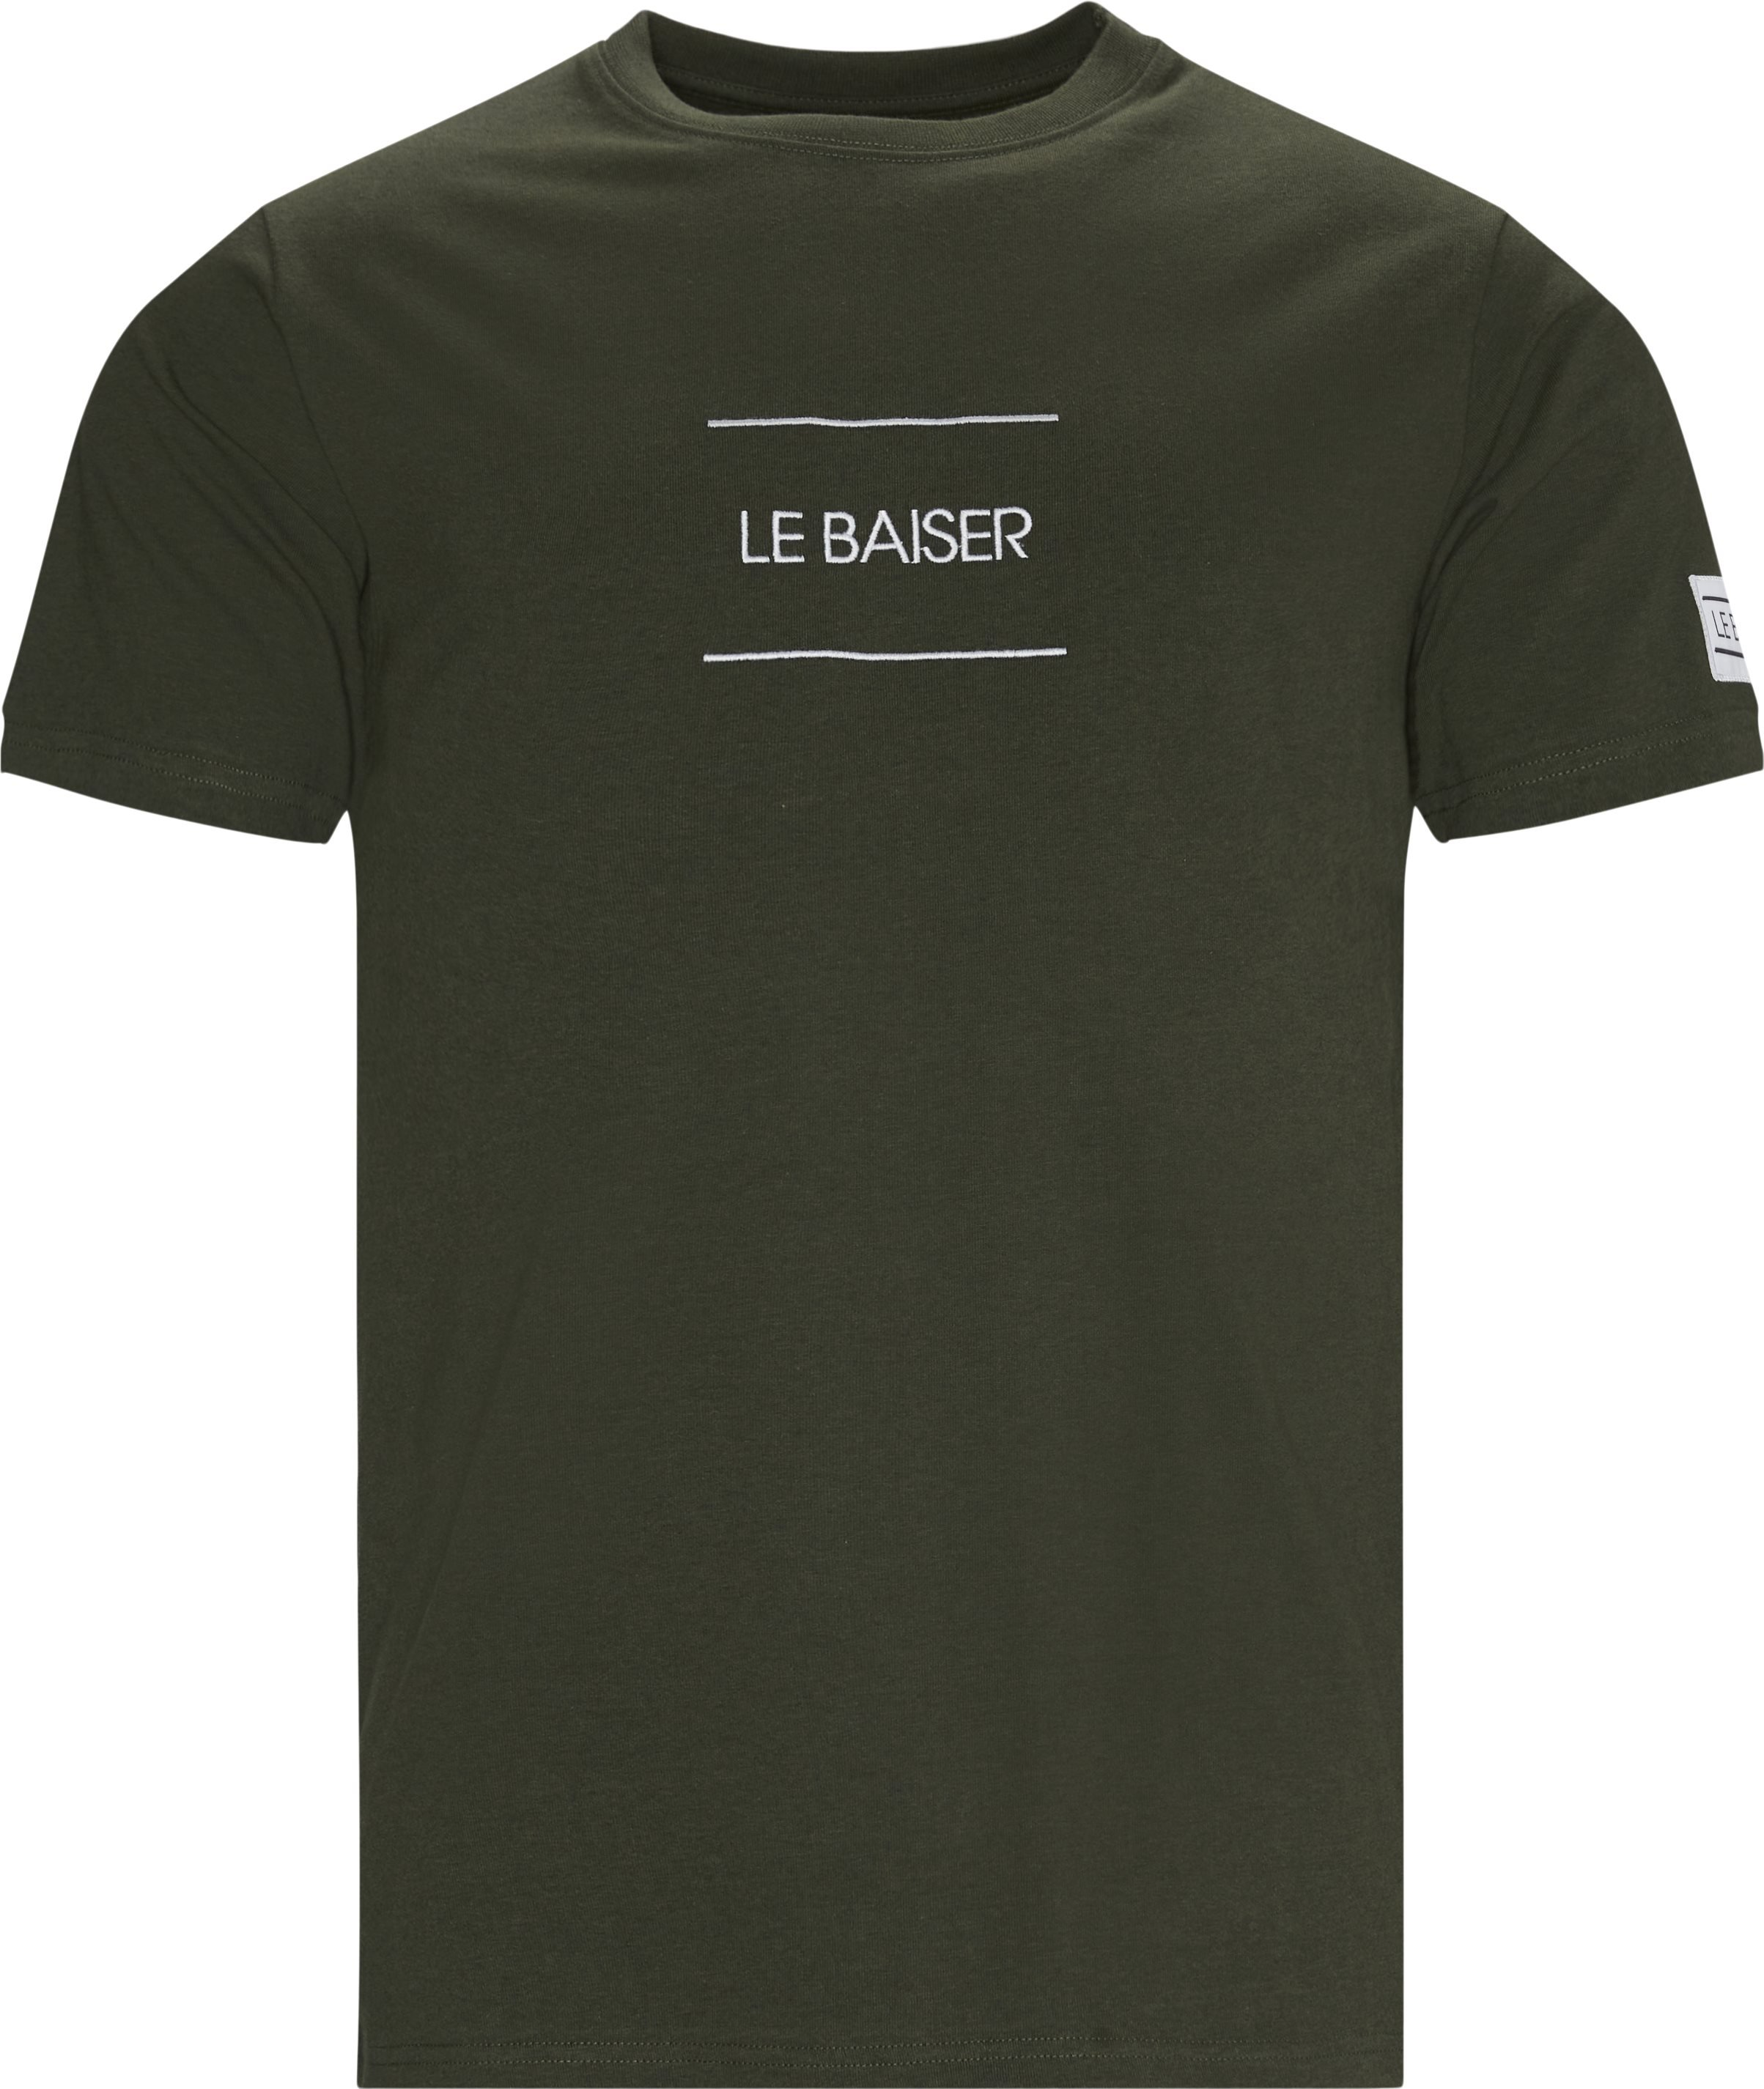 Caen T-shirt - T-shirts - Regular - Army